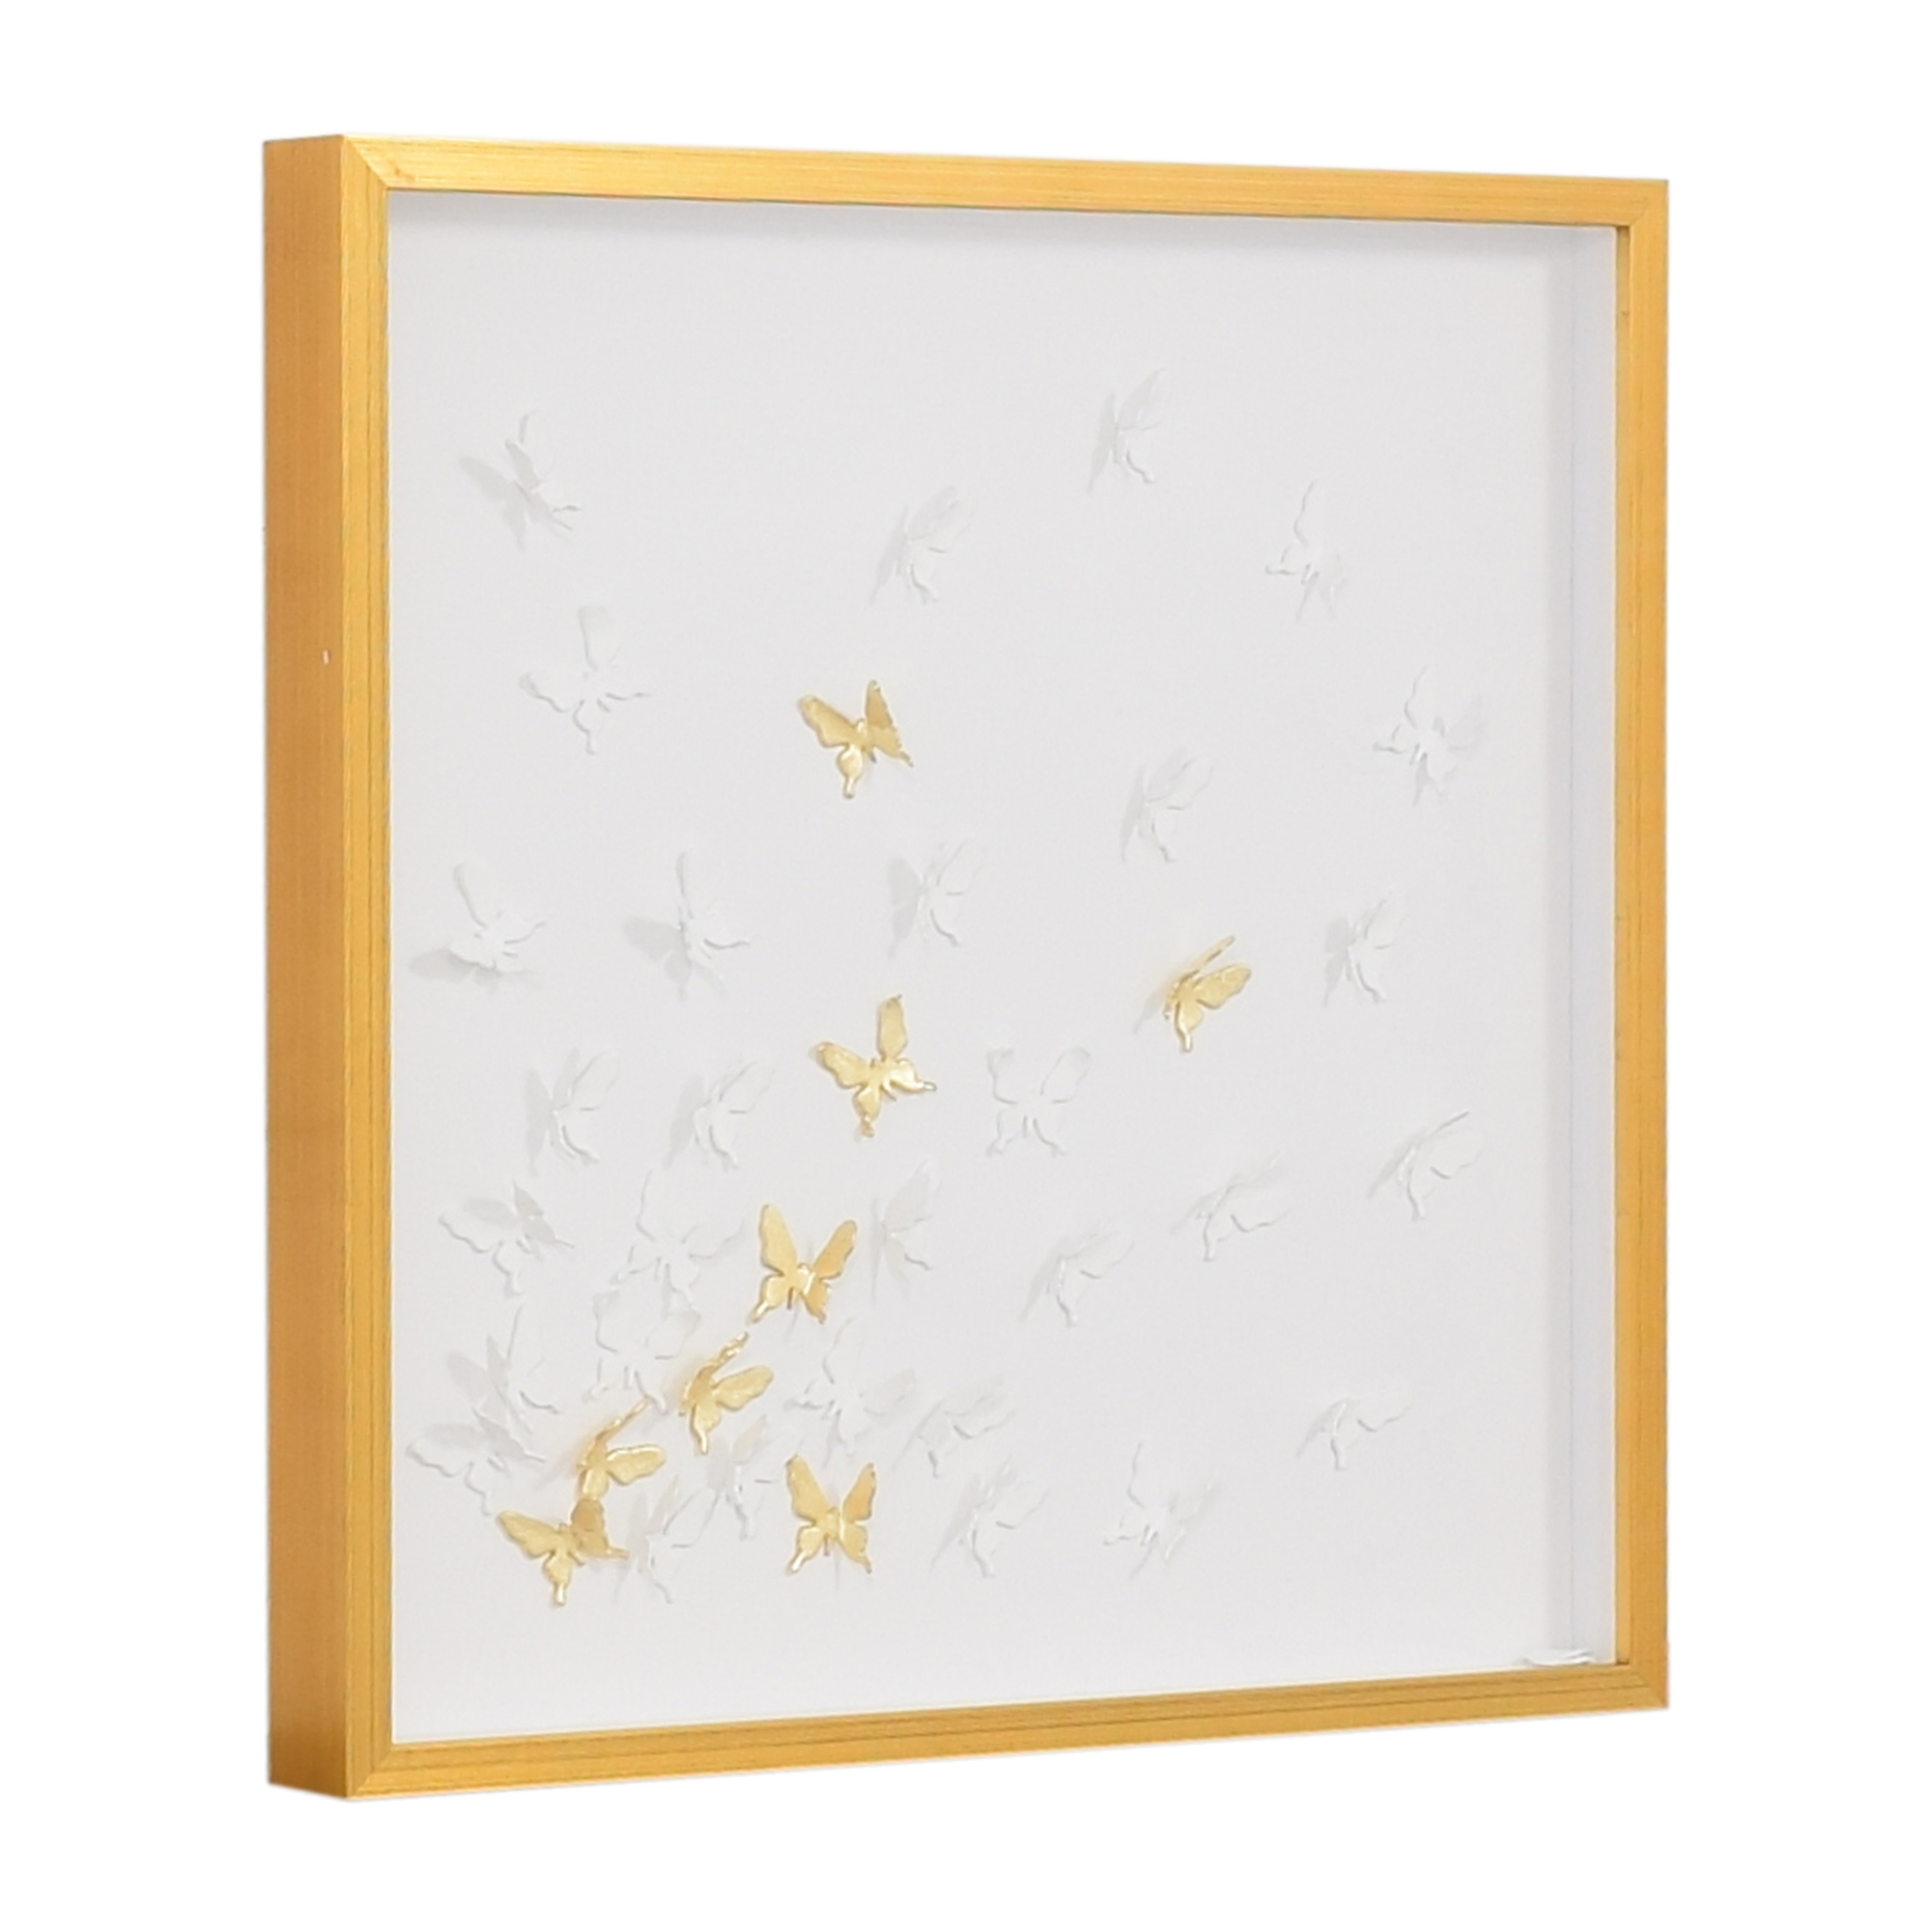 Modsy Modsy Framed Golden Butterfly III Wall Art nyc